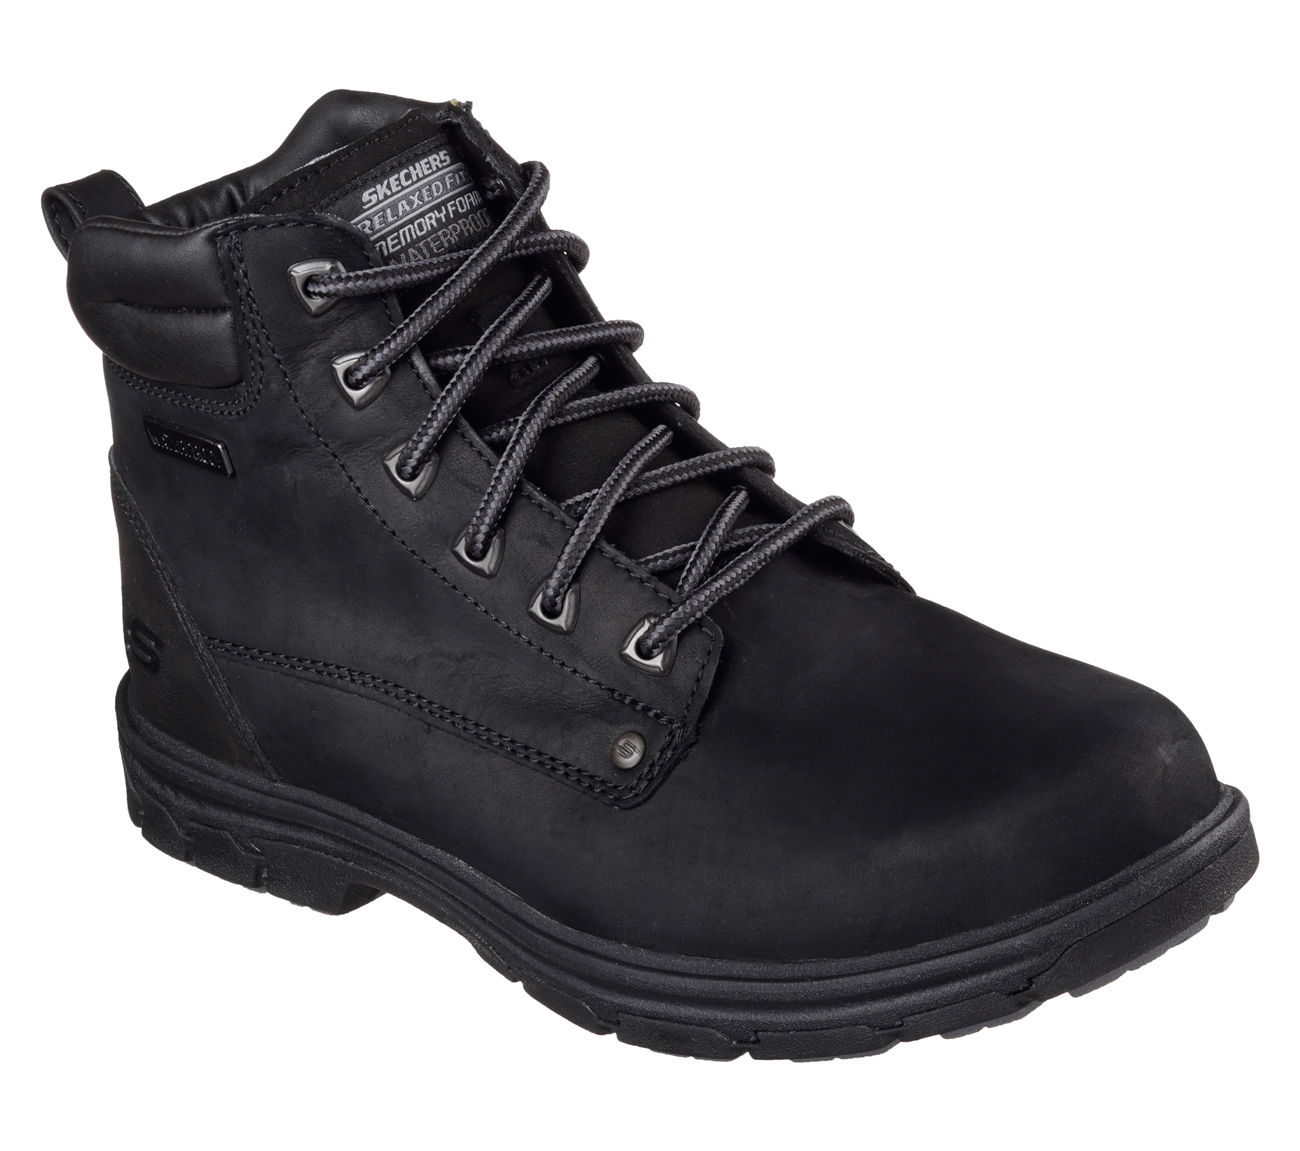 Relaxed Fit Segment Amson Mens Waterproof Boots Skechers  black